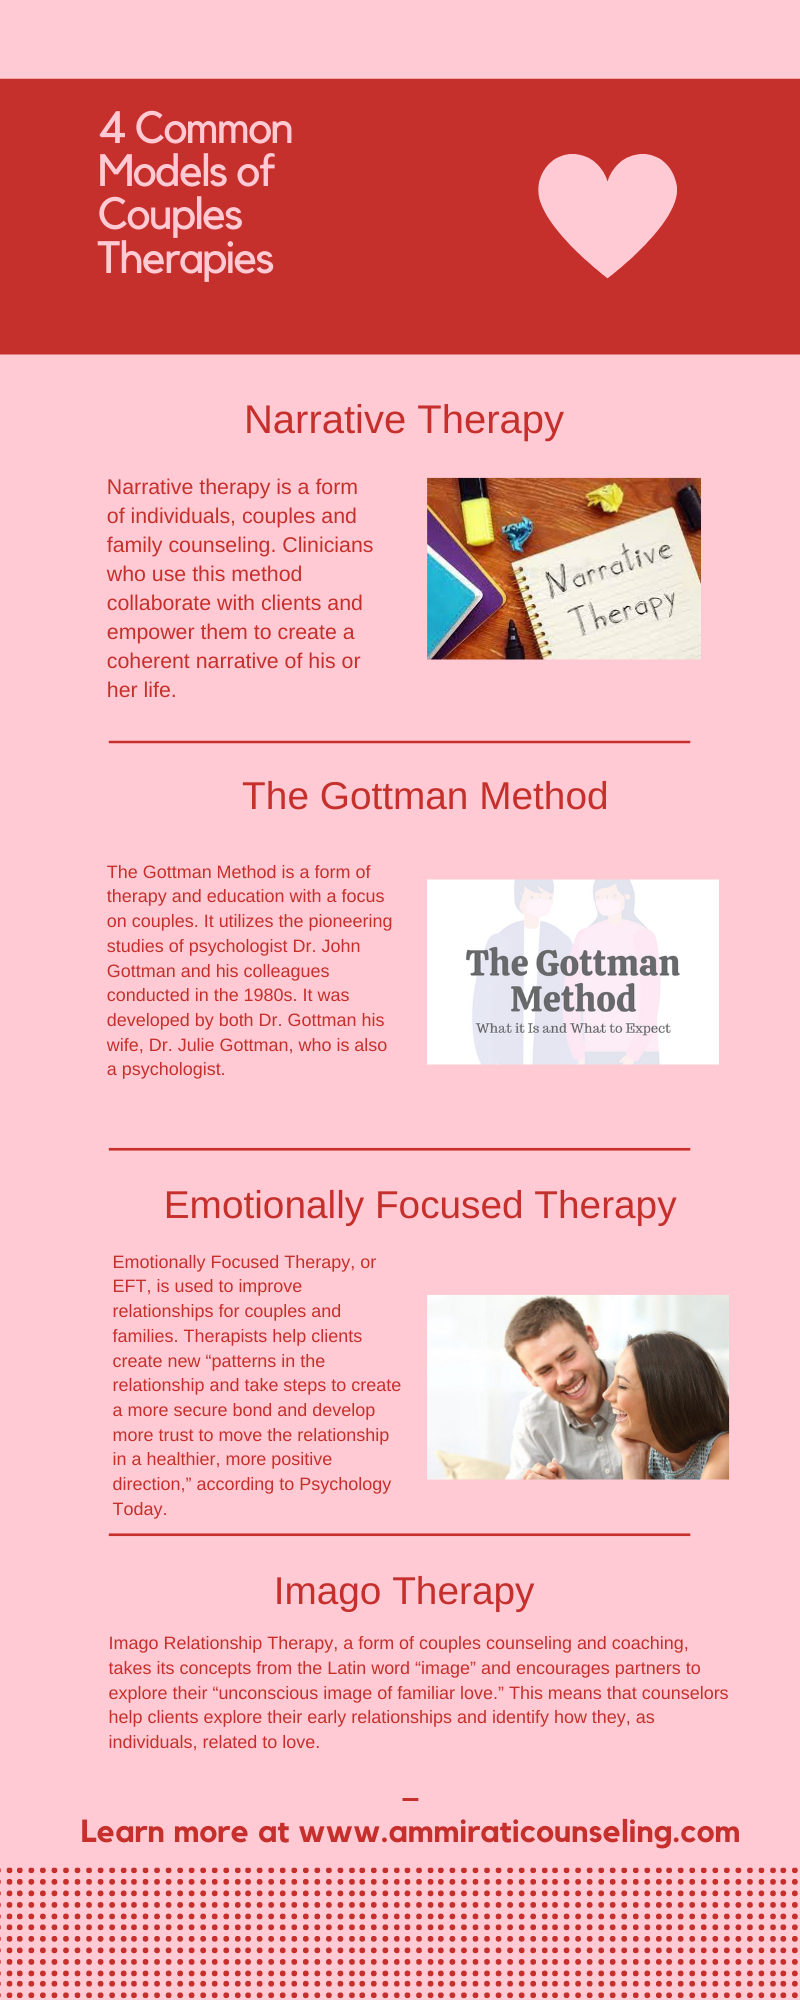 4 Common Models of Couples Therapies